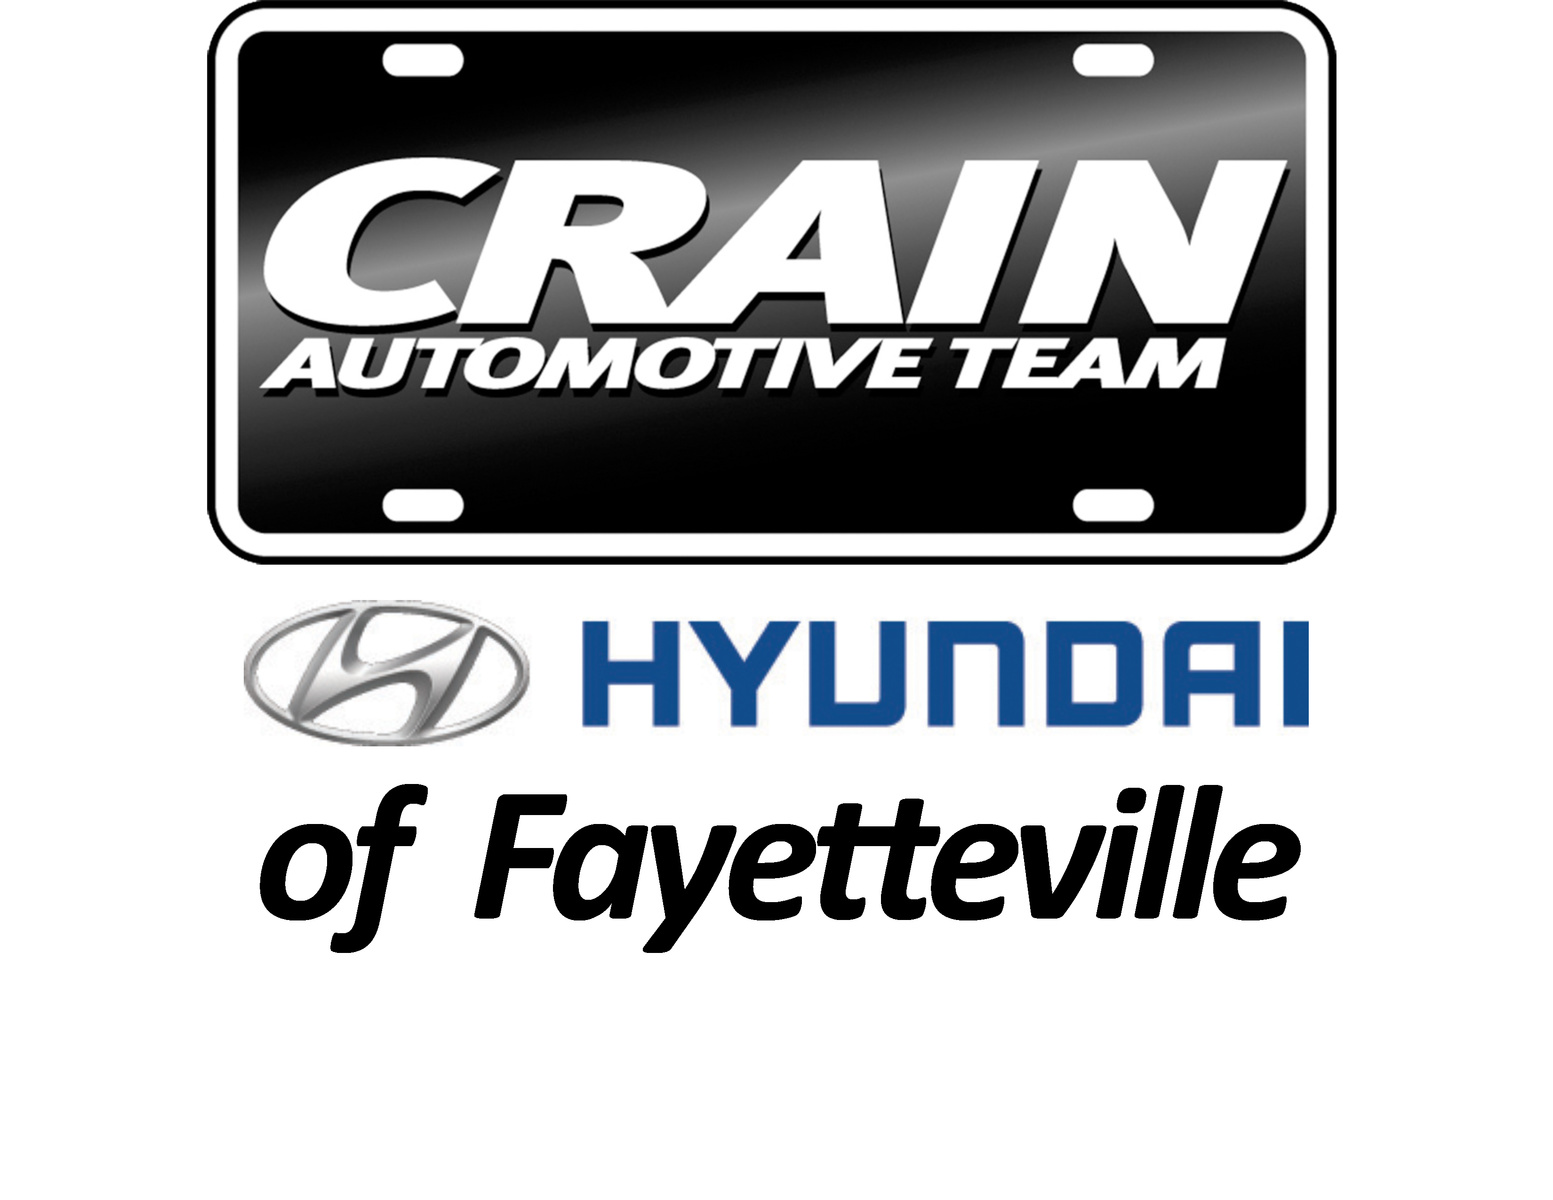 Crain Hyundai of Fayetteville - Fayetteville, AR: Read Consumer reviews, Browse Used and New ...